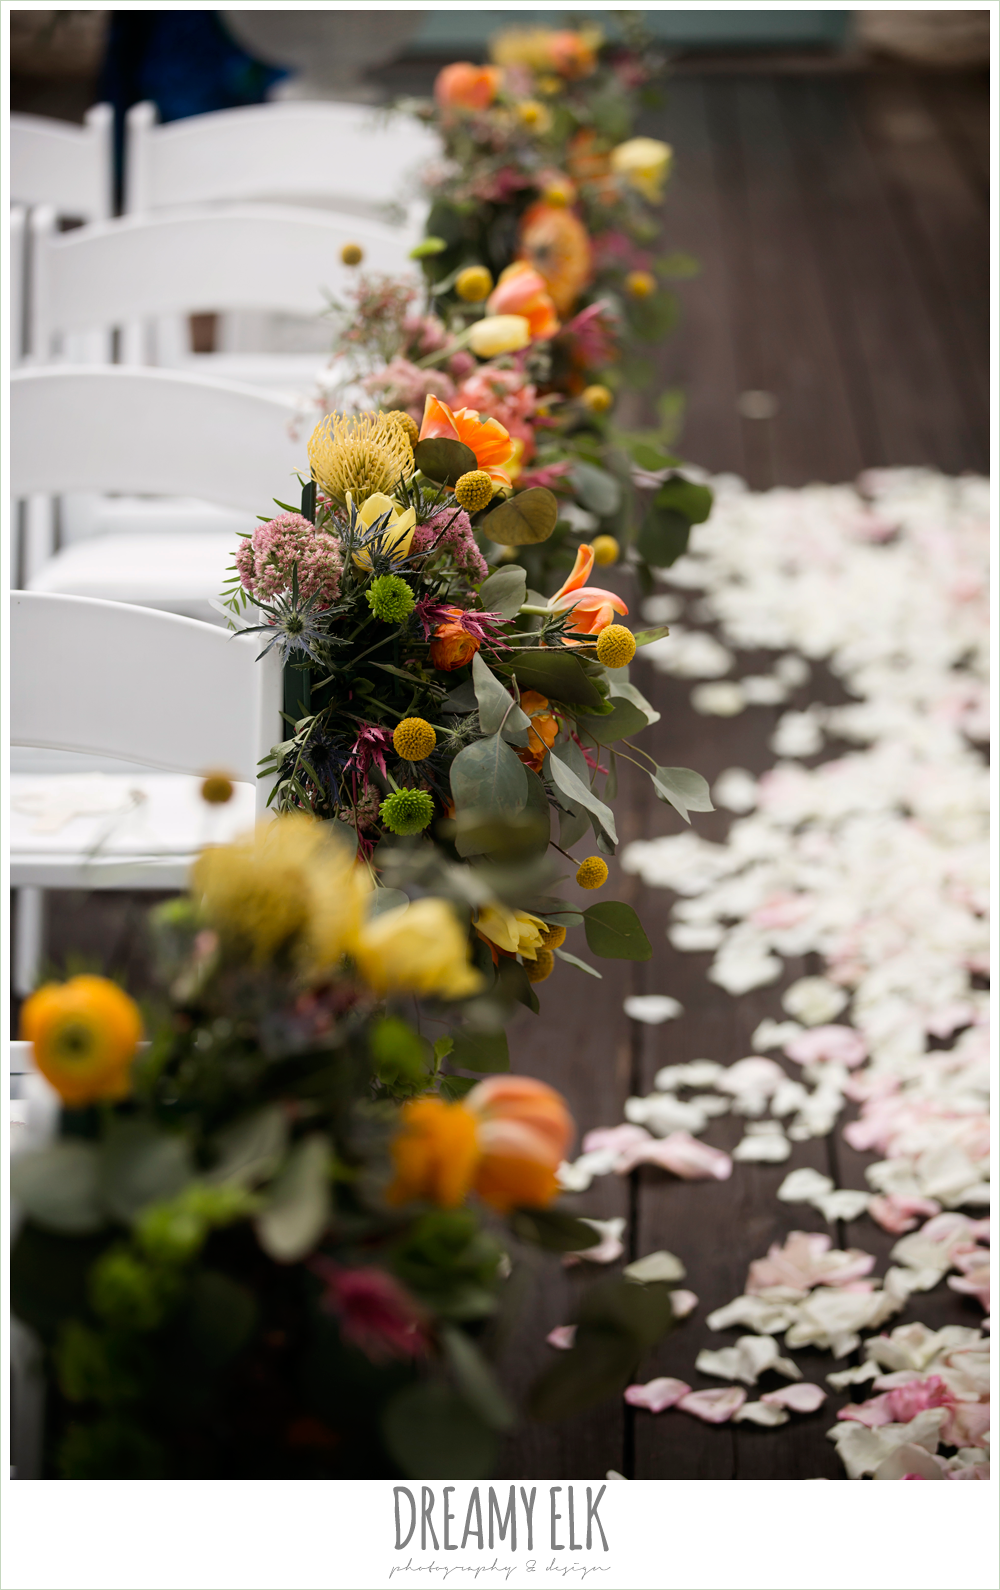 Plans n' Petals wedding bouquet, ceremony chair flower decorations, arrangements, colorful outdoor sunday morning brunch wedding, hyatt hill country club, san antonio wedding photo {dreamy elk photography and design}